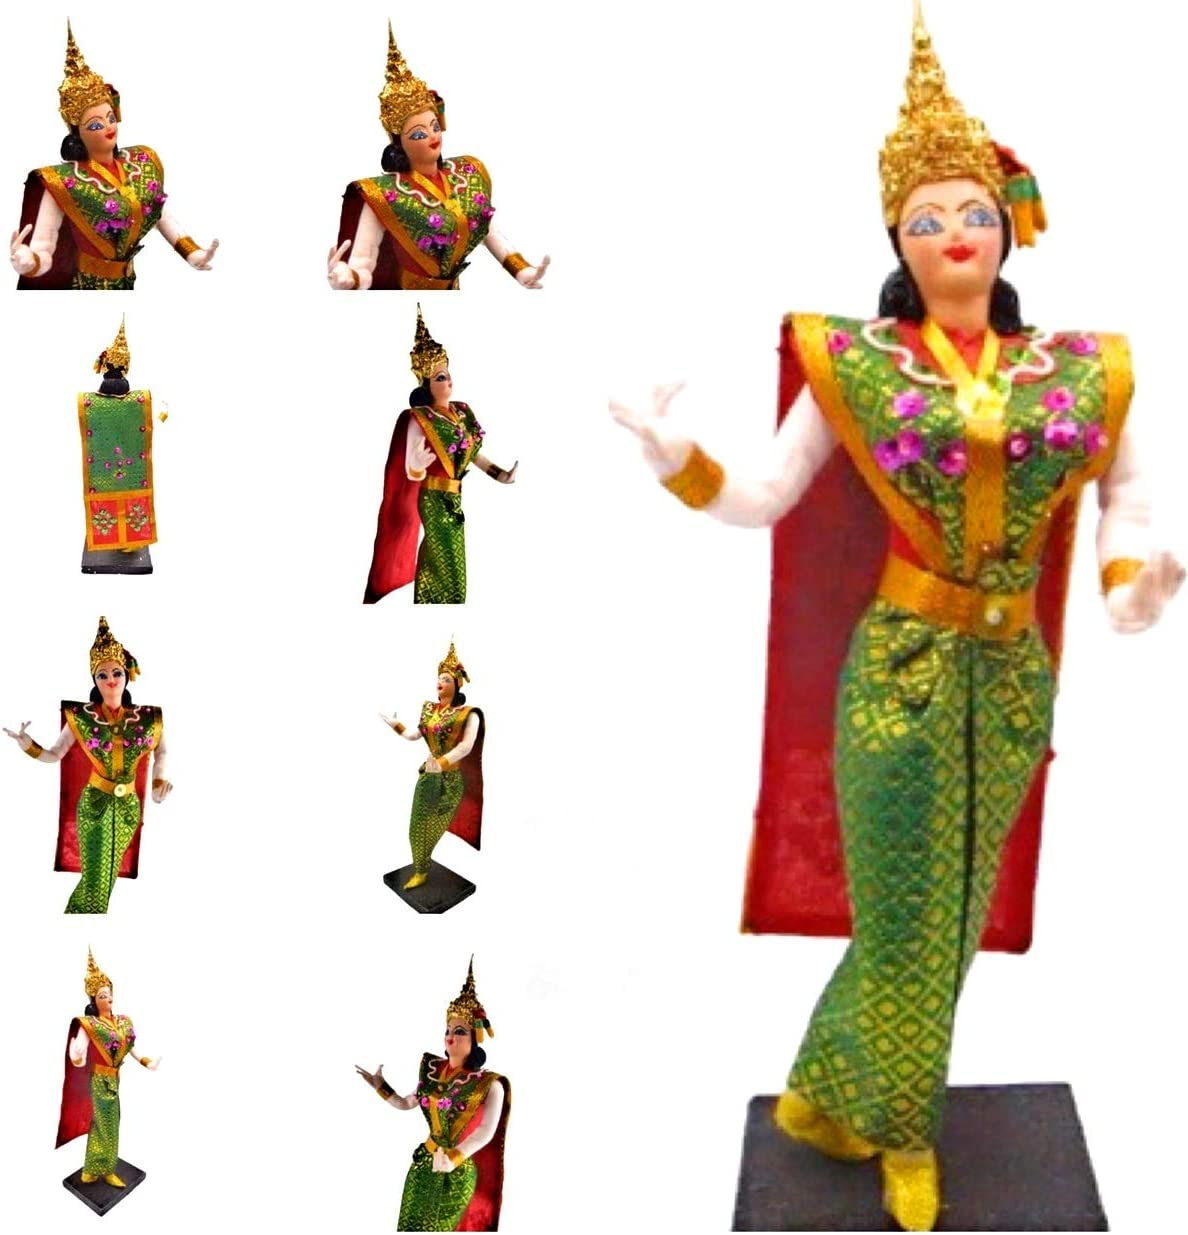 Thai Dancer Dolls Ornaments- Vintage Dancing Figures in Beautiful, Handmade & Traditional Costume- Thailand Decorative Figurines W2.3L4.4H11 inches Weight 148g